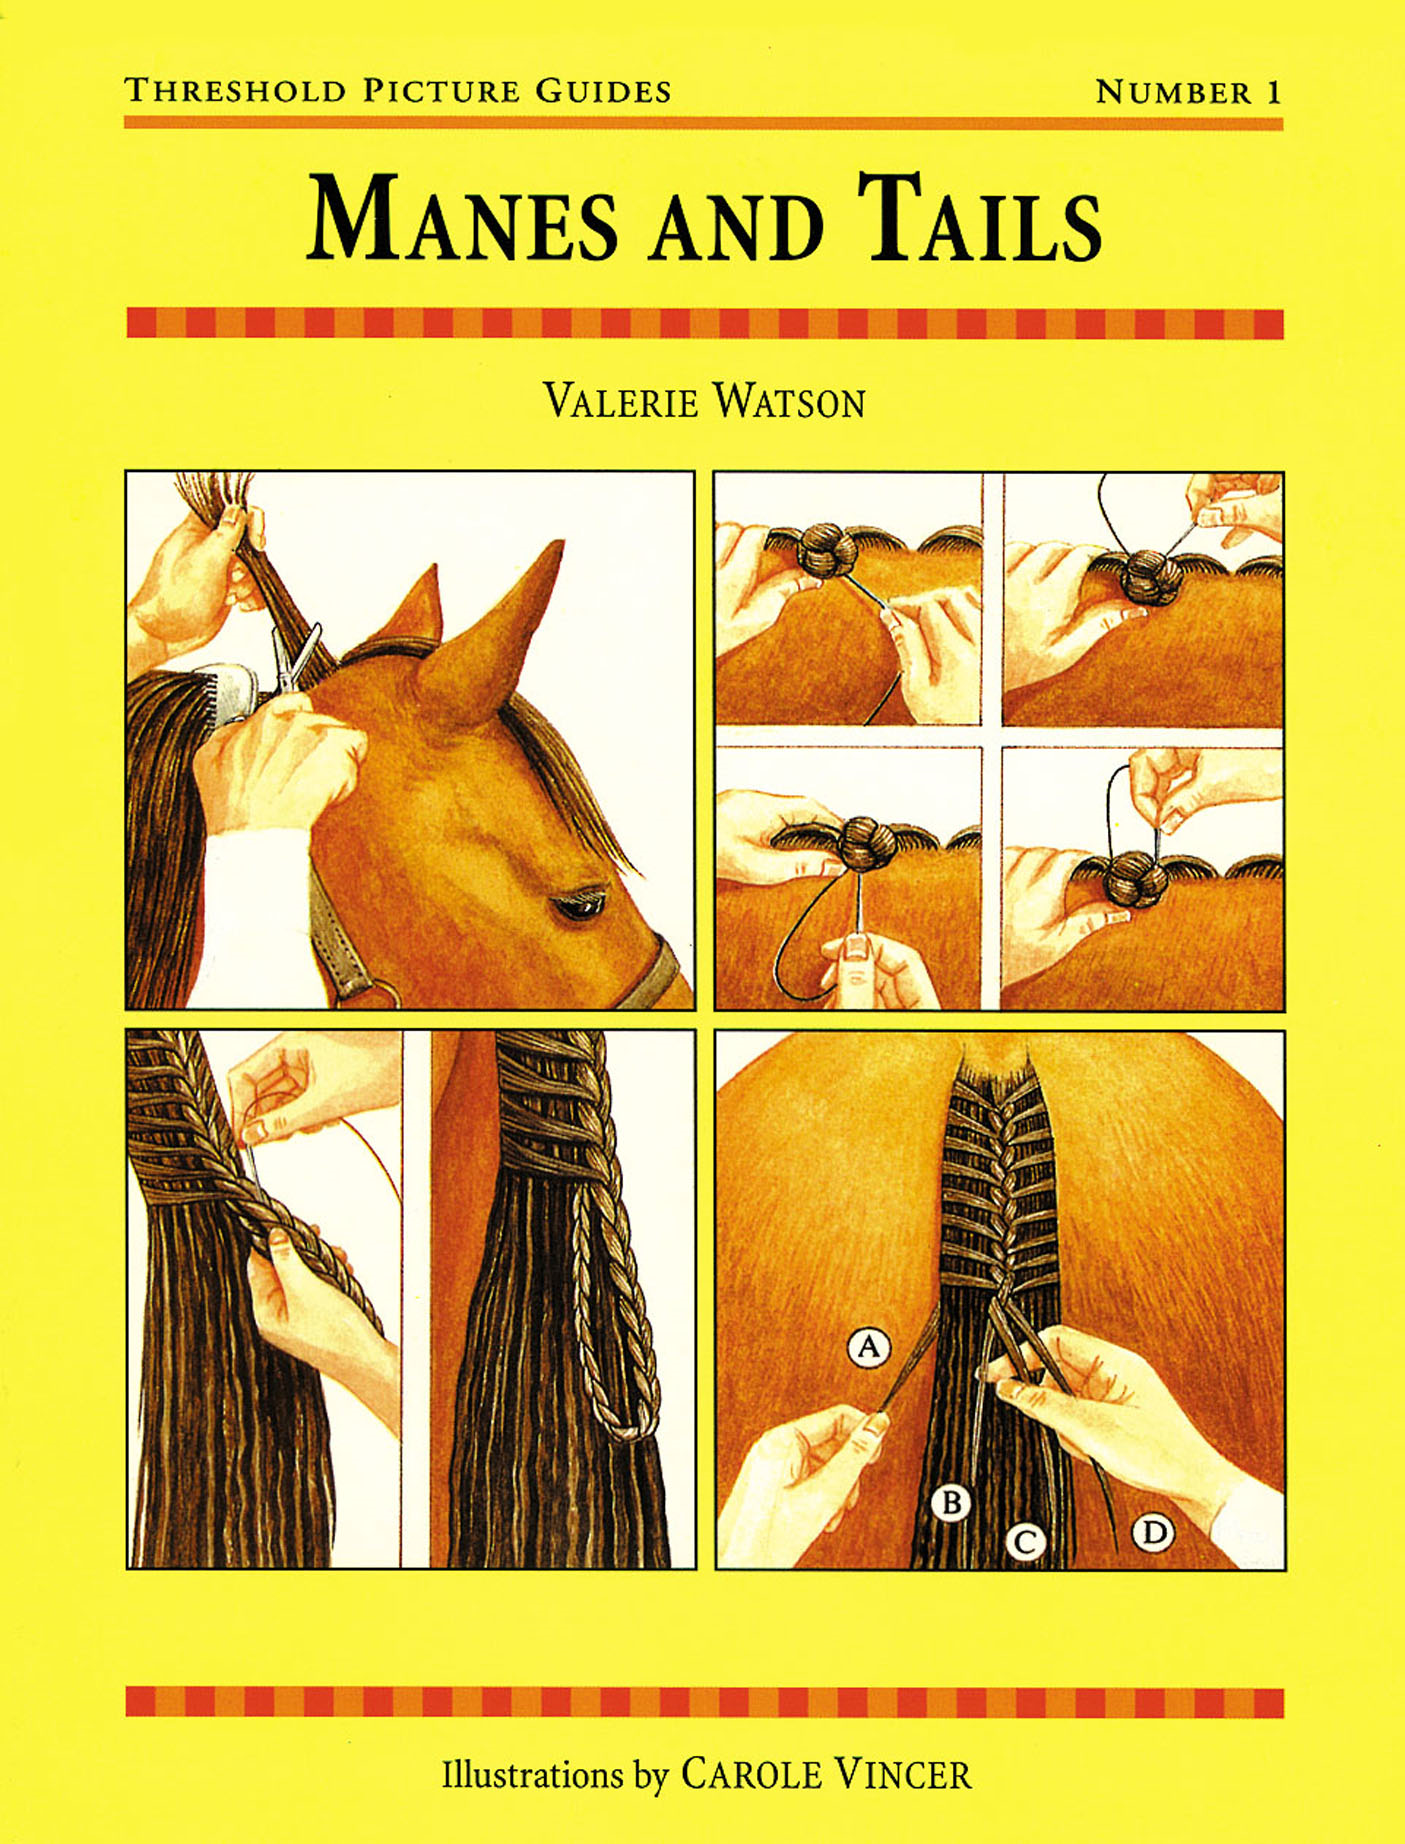 MANES AND TAILS By: VALERIE WATSON,CAROLE VINCER